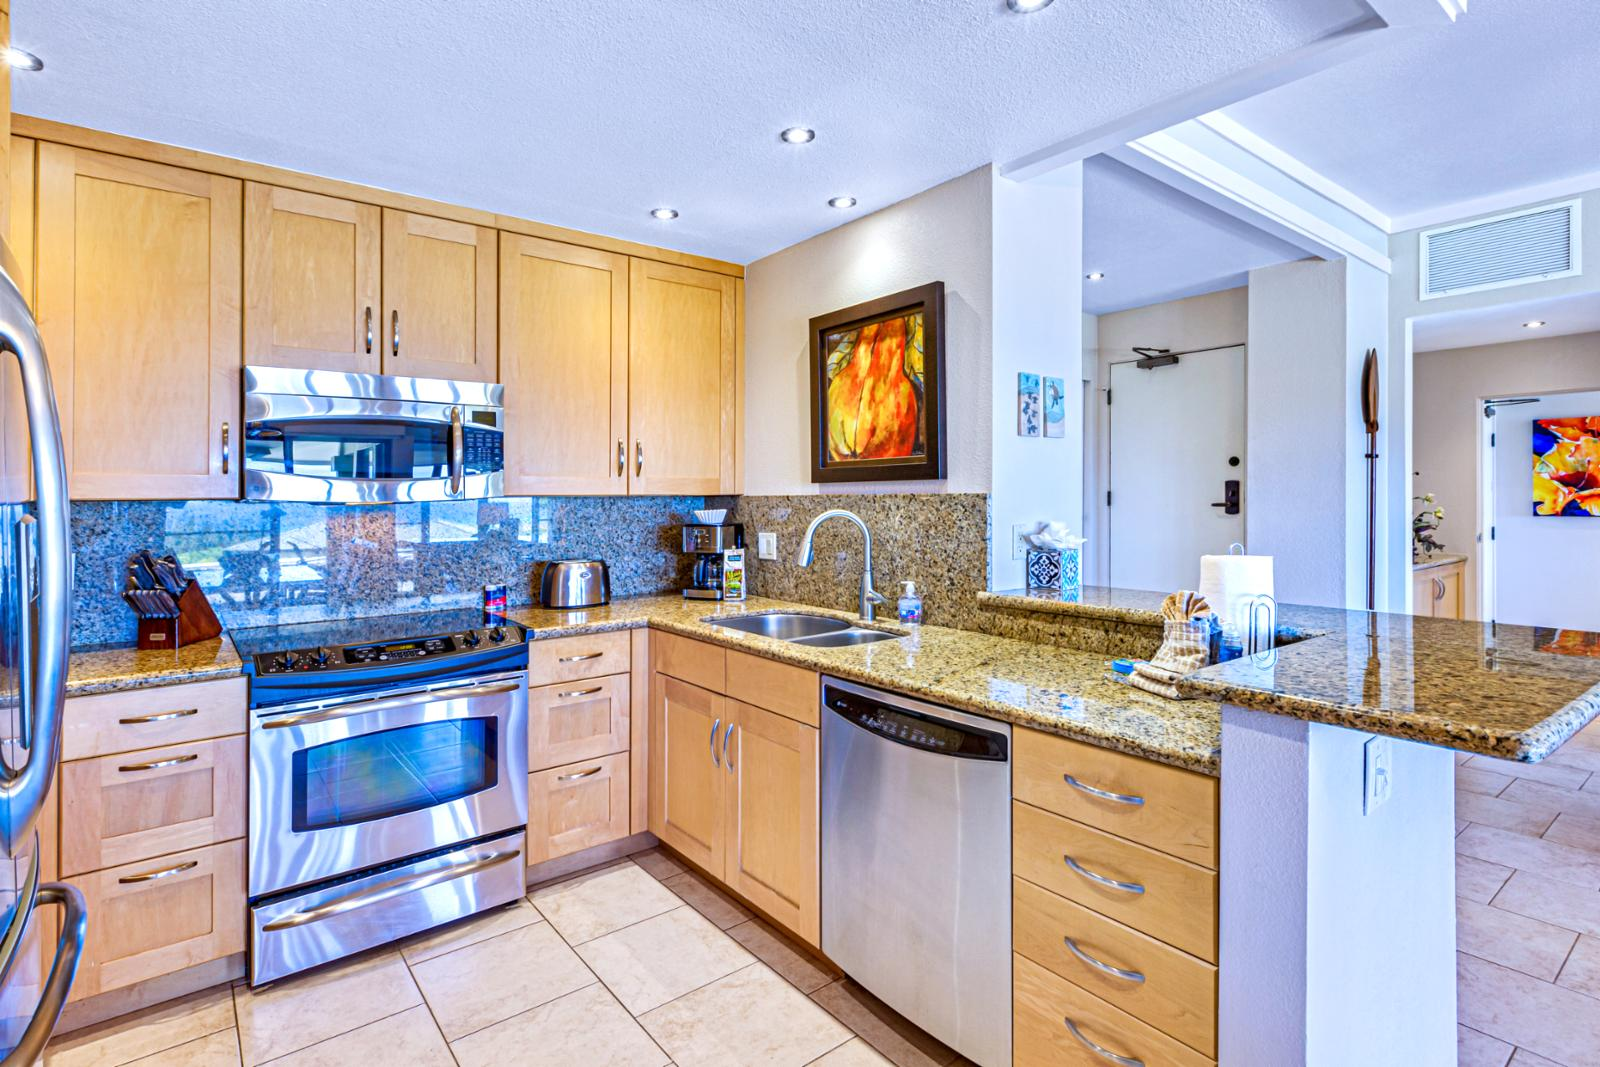 Custom cabinetry and full-size appliances throughout this gourmet kitchen.